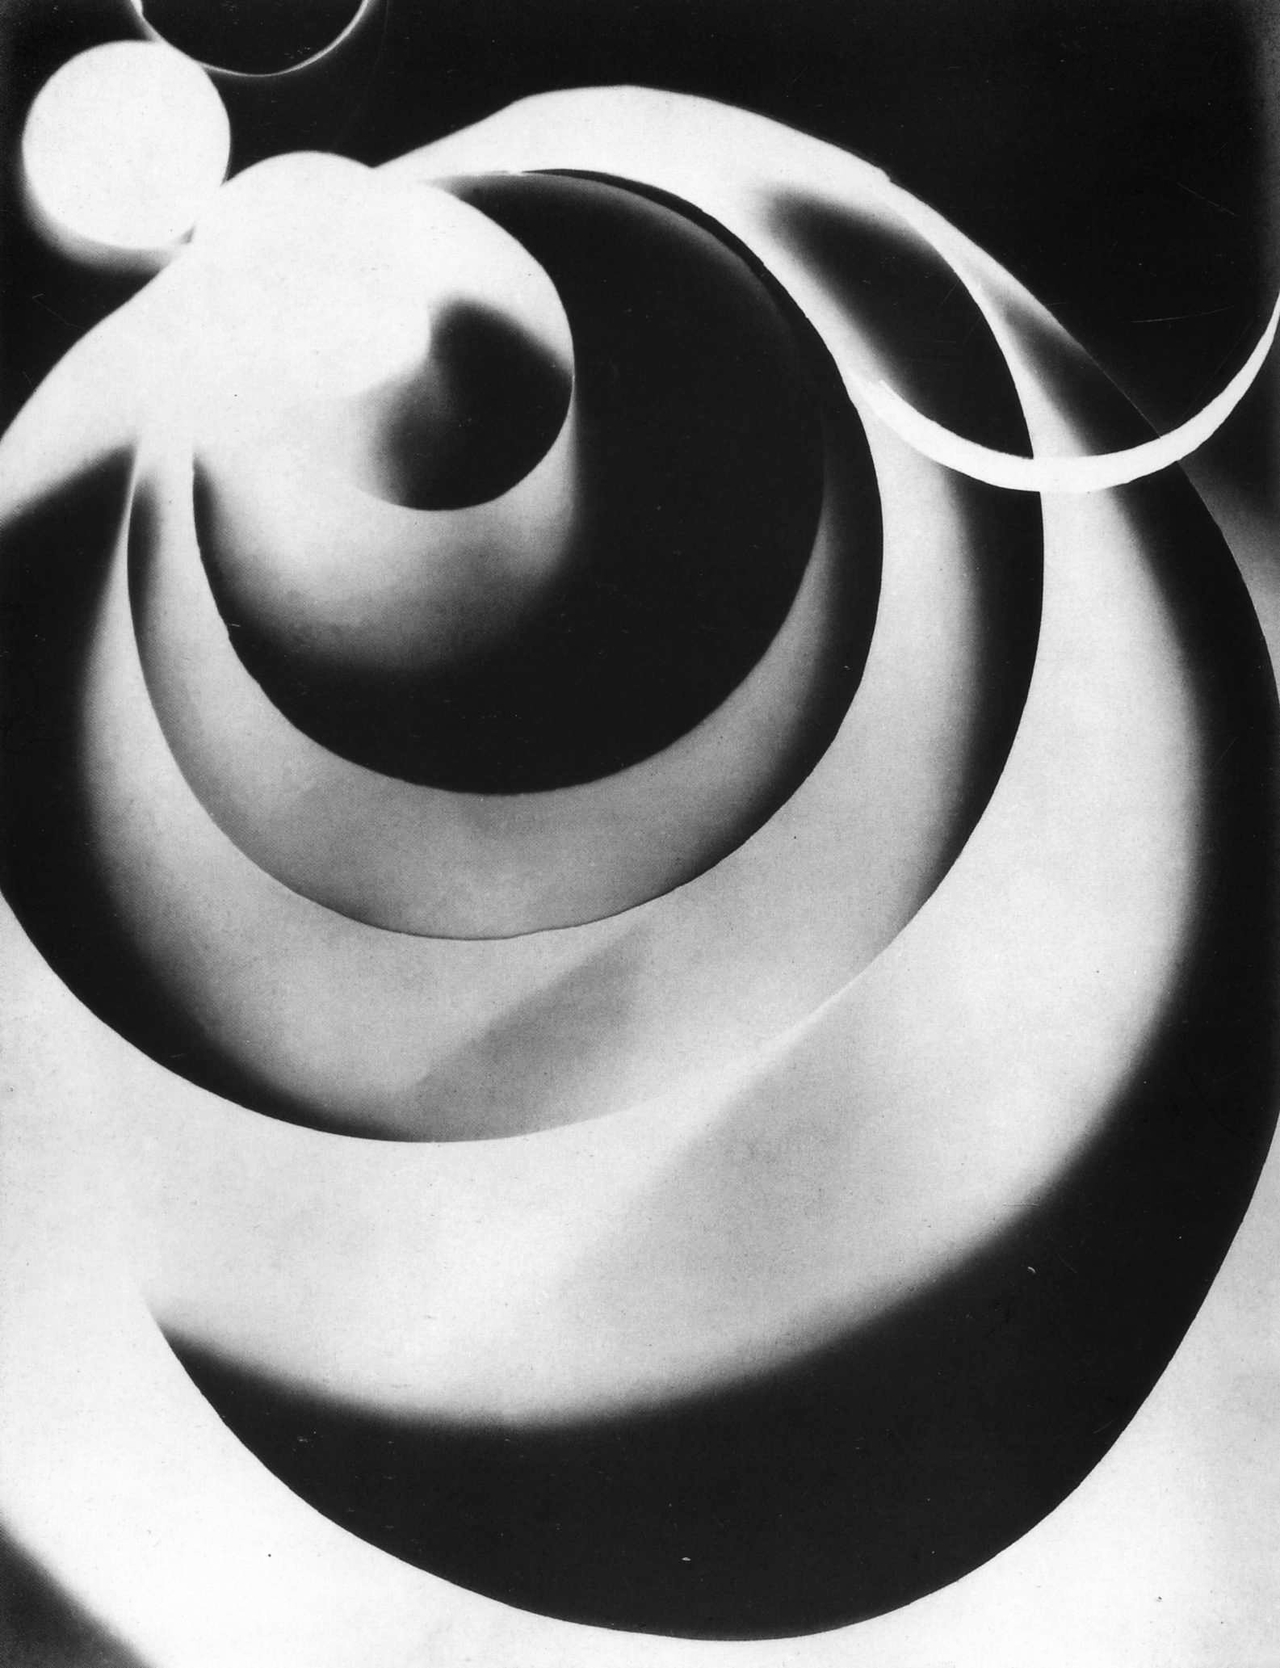 Man Ray, Rayography Champs délicieux n° 8, 1922, pinterest.com